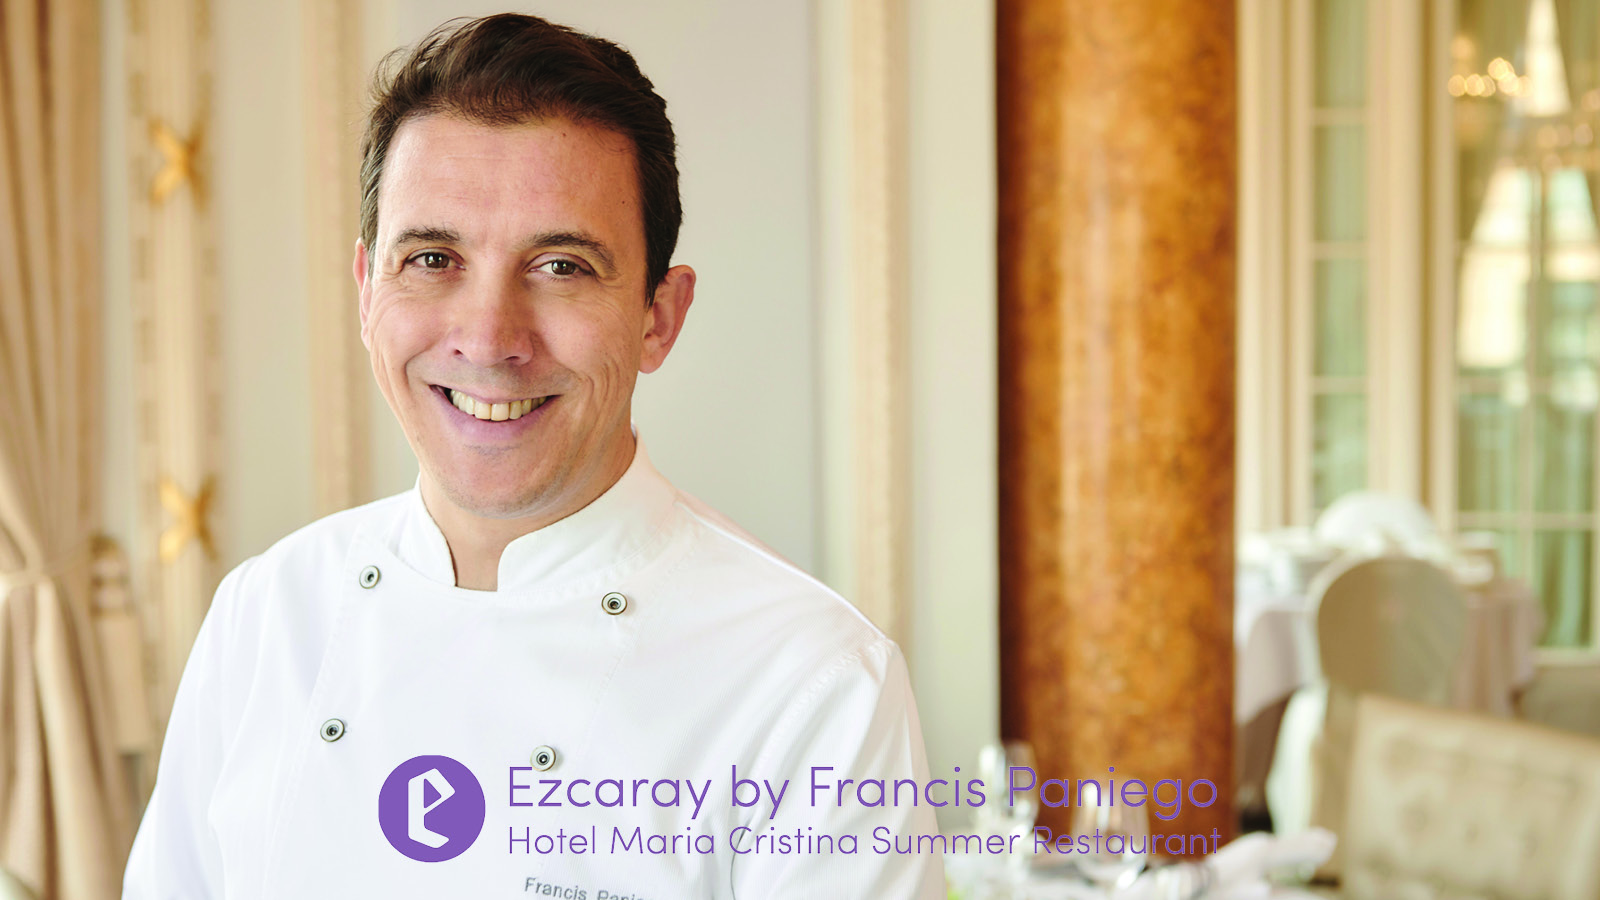 Ezcaray by Francis Paniego at Hotel Maria Cristina